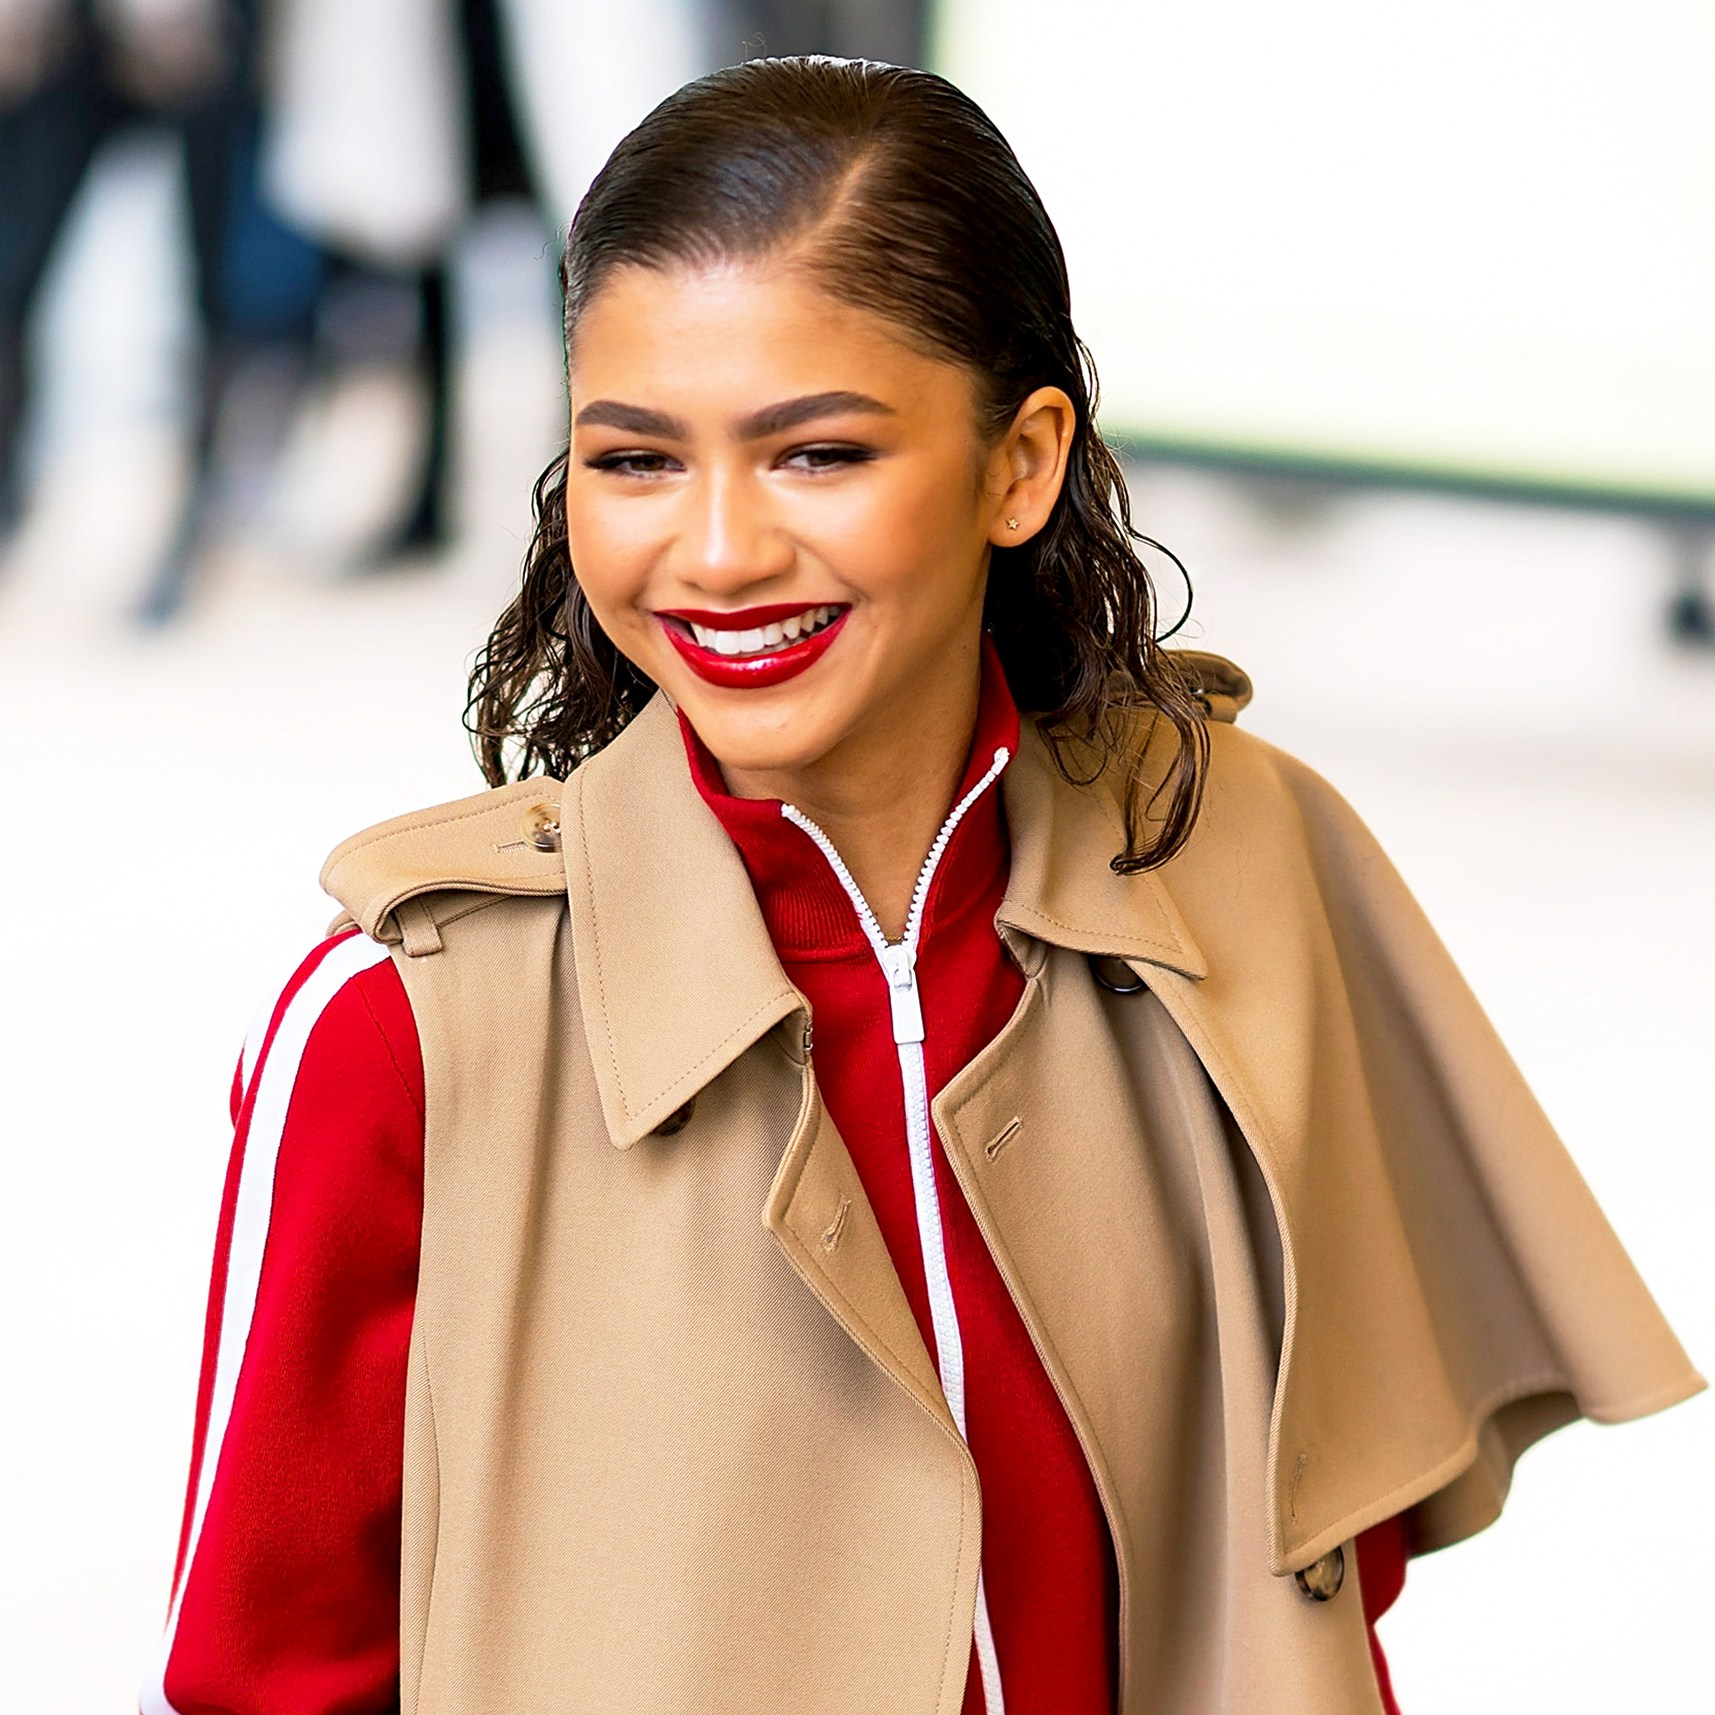 Zendaya attends the Michael Kors fashion show during New York 2018 Fashion Week at the Vivian Beaumont Theater at Lincoln Center in New York City.